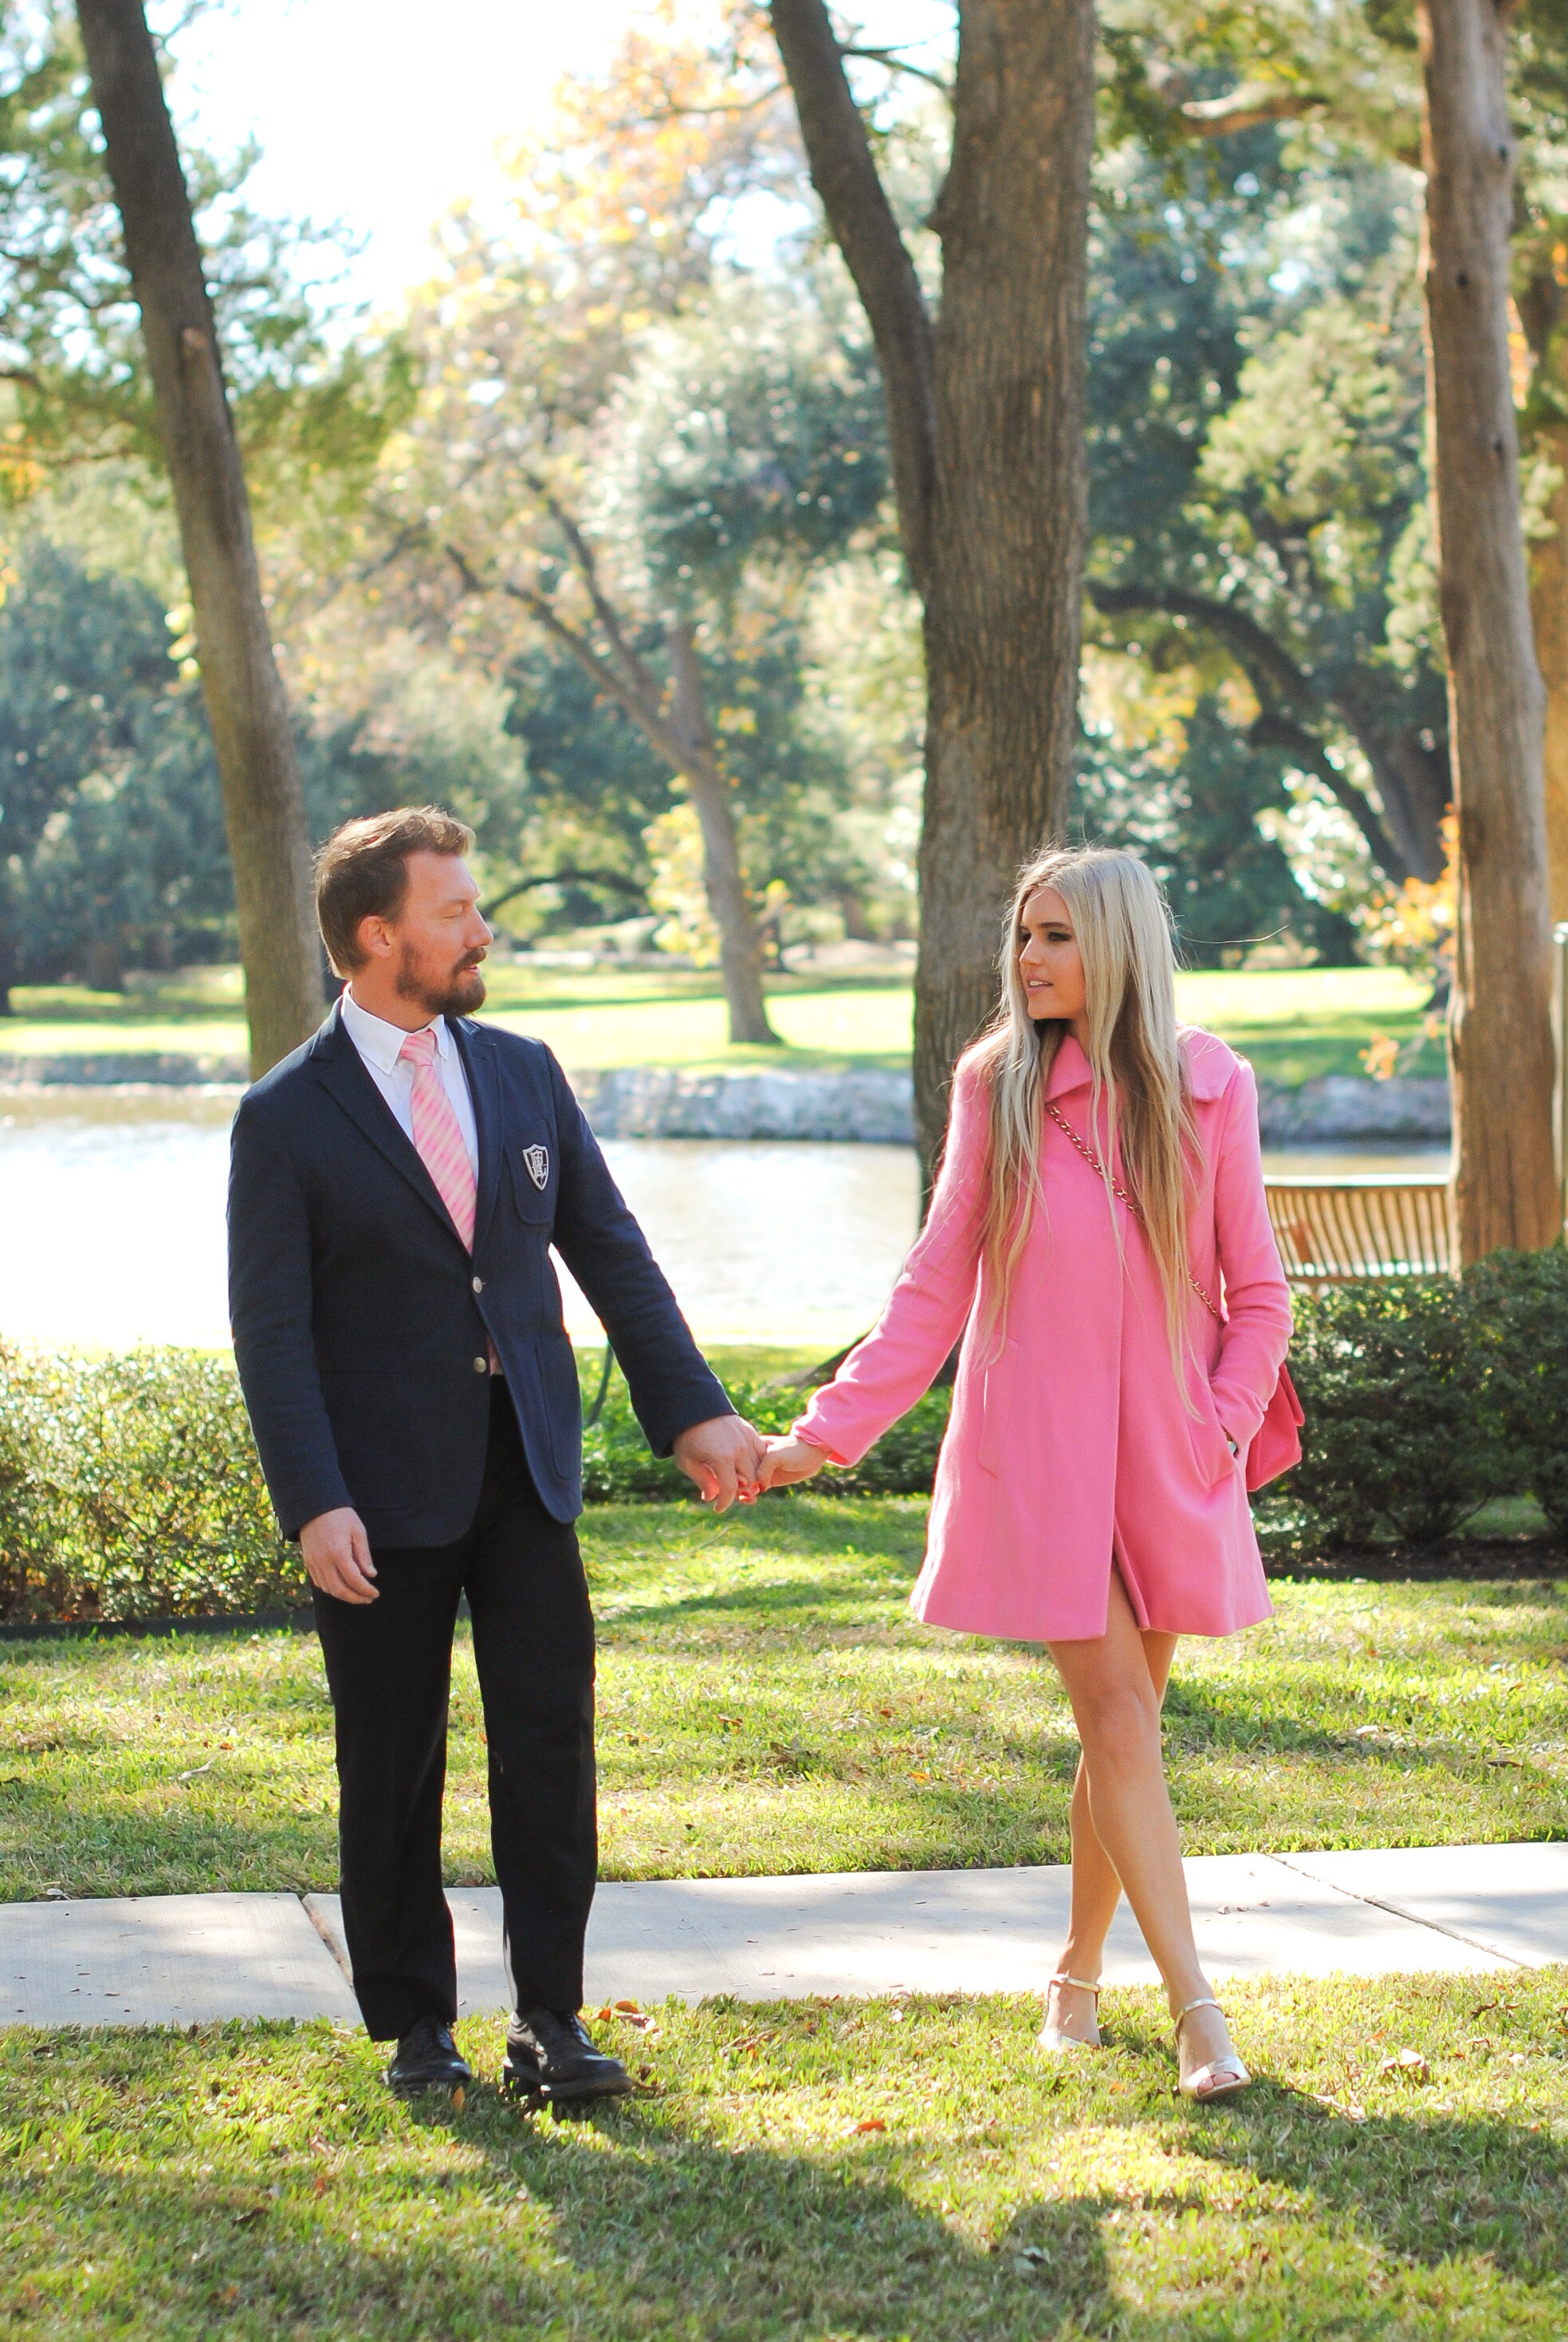 Michael Bowman wearing an Eden Park suit and Viivienne Westwood Tie. Stephany Bowman in a Pink Tartan coat, Topshop shoes, and pink Chanel handbag